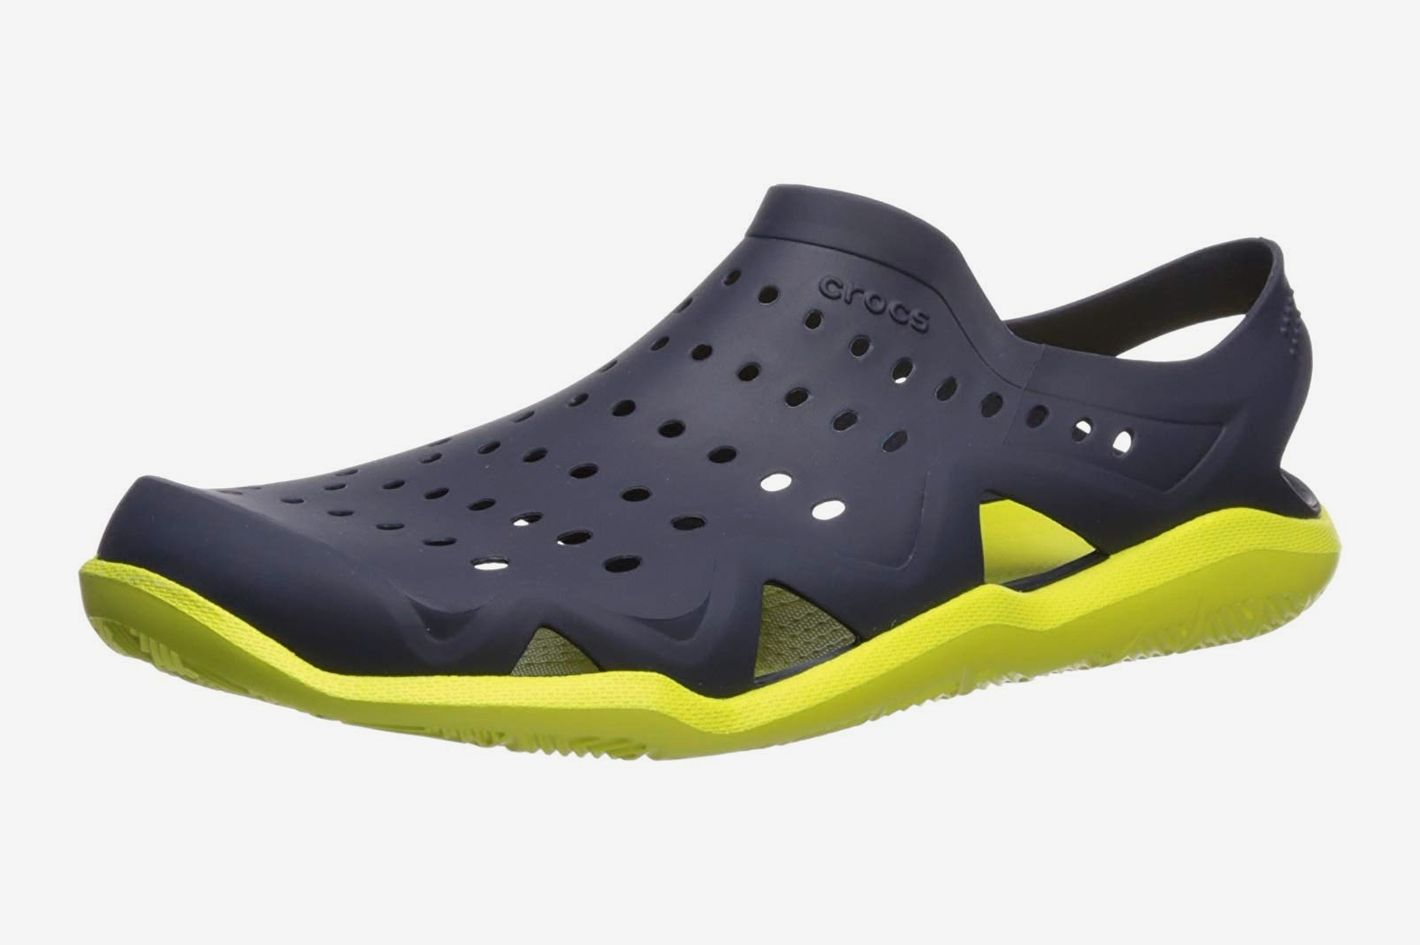 e9baed7e0d61e 11 Best Water Shoes for Men — 2019